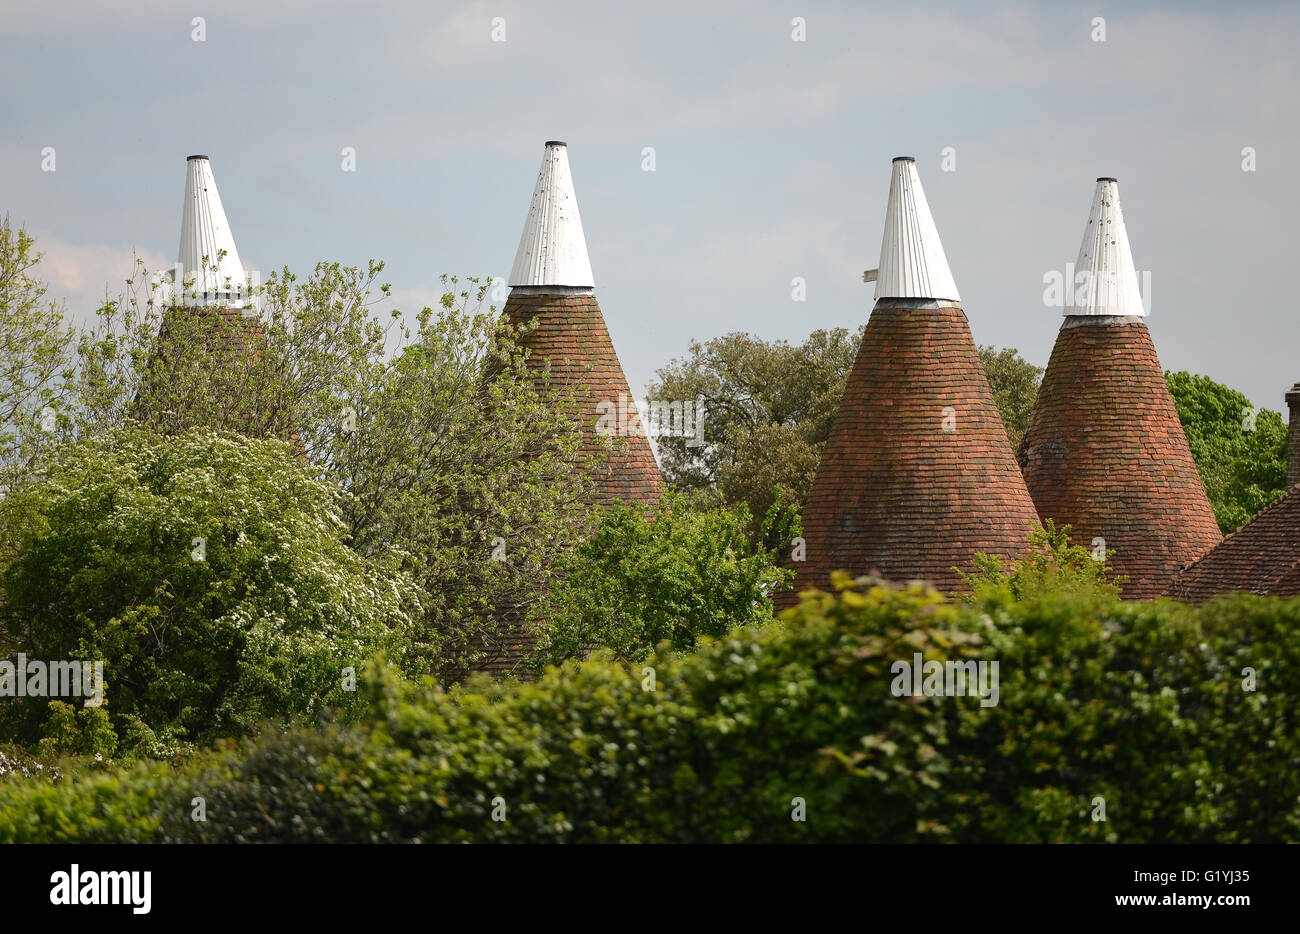 Oast house roofs, East Sussex - Stock Image